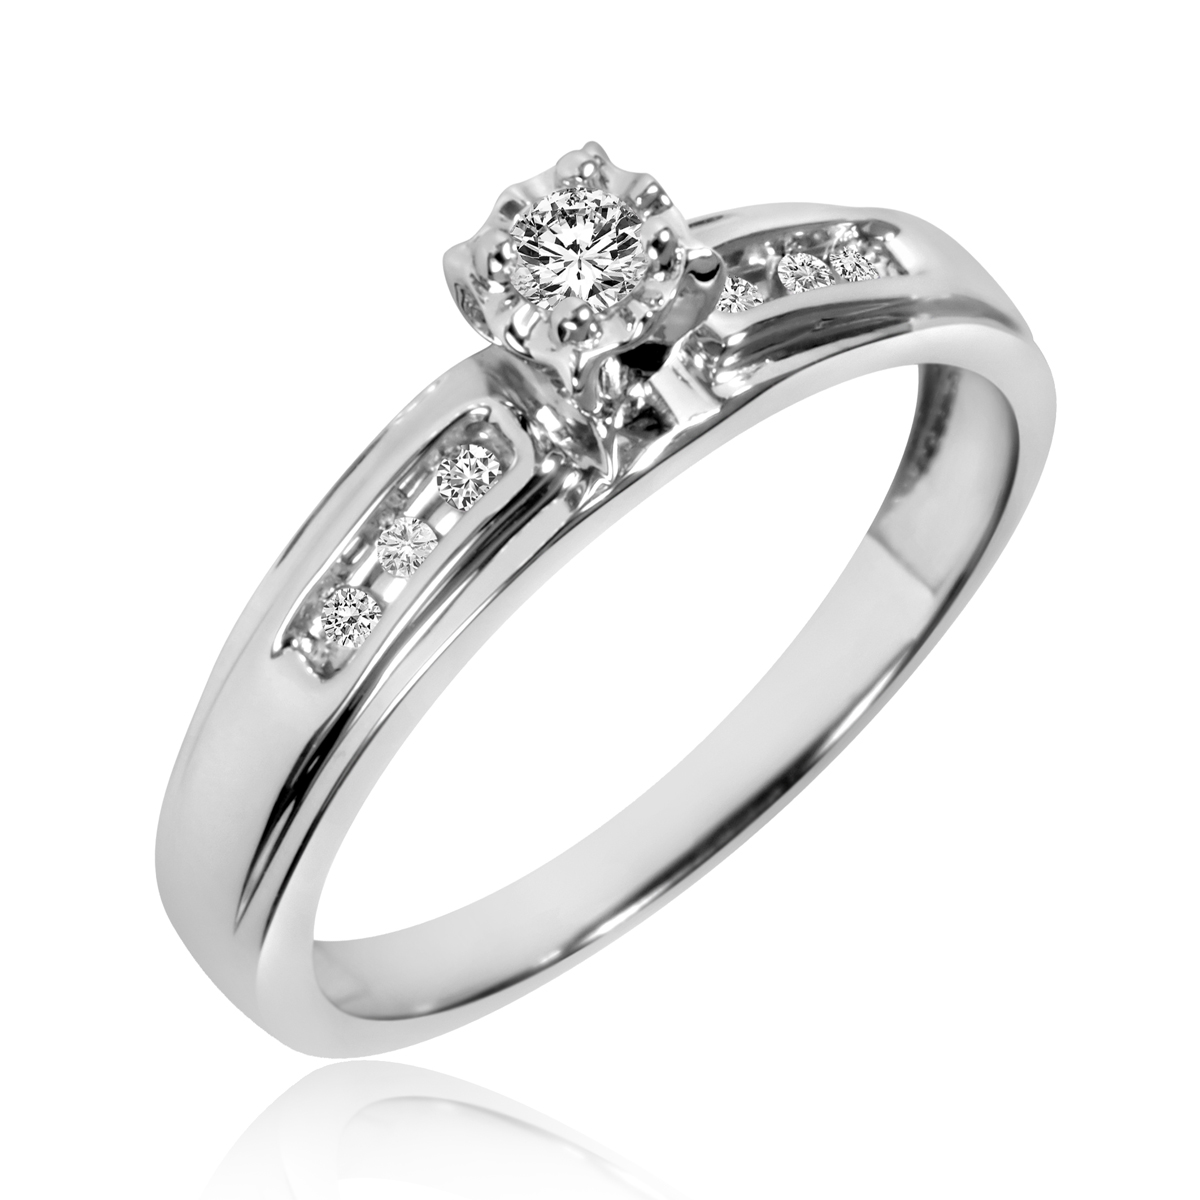 1 5 ct tw diamond ladies39 bridal wedding ring set 14k for Ladies diamond wedding ring sets